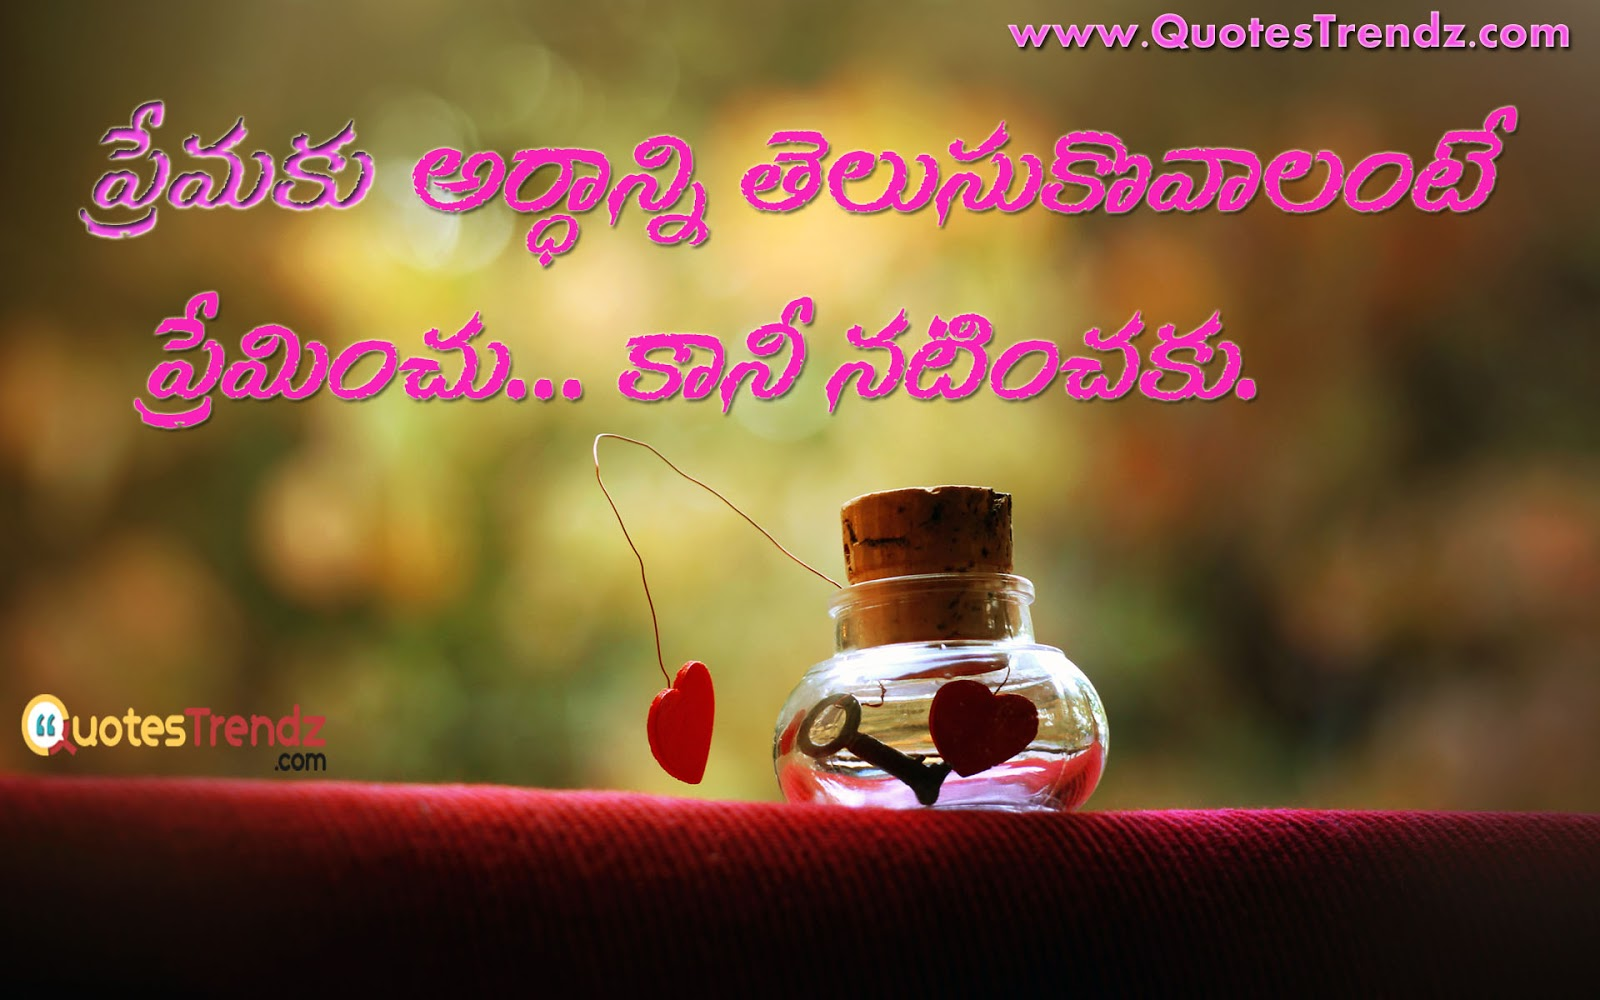 Telugu Love Quotes Enchanting Telugu Love Quotes  Quotestrendz